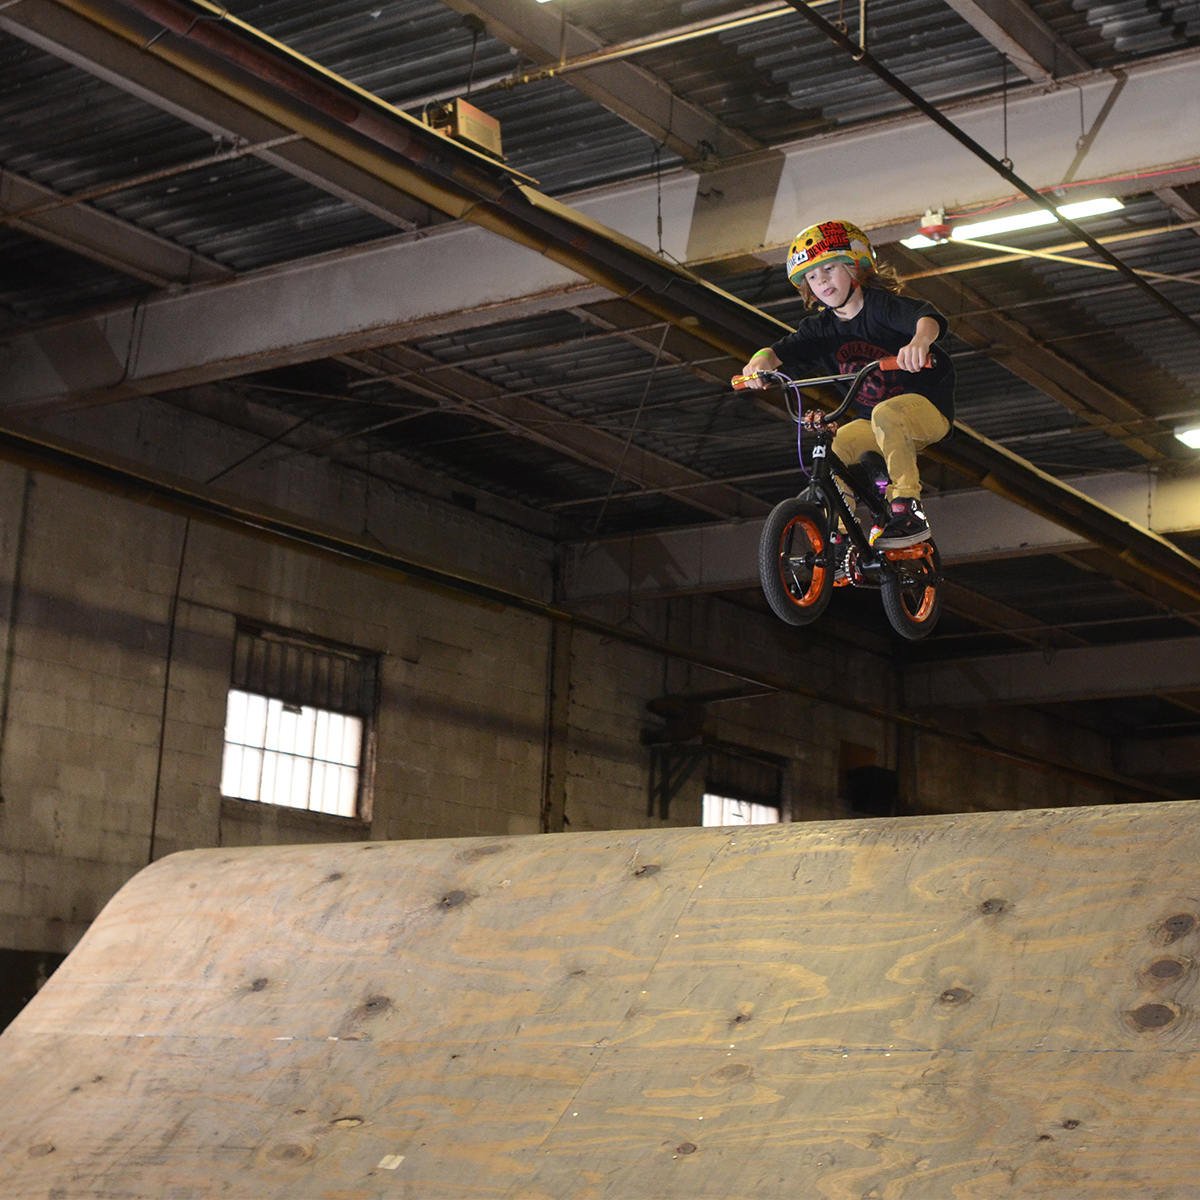 TBT to last March at the Next Gen Jam at the Wheelmill in PA. 5 yr old Beau Baker takes on the Woods Jump Room. Photo: Dave Billington